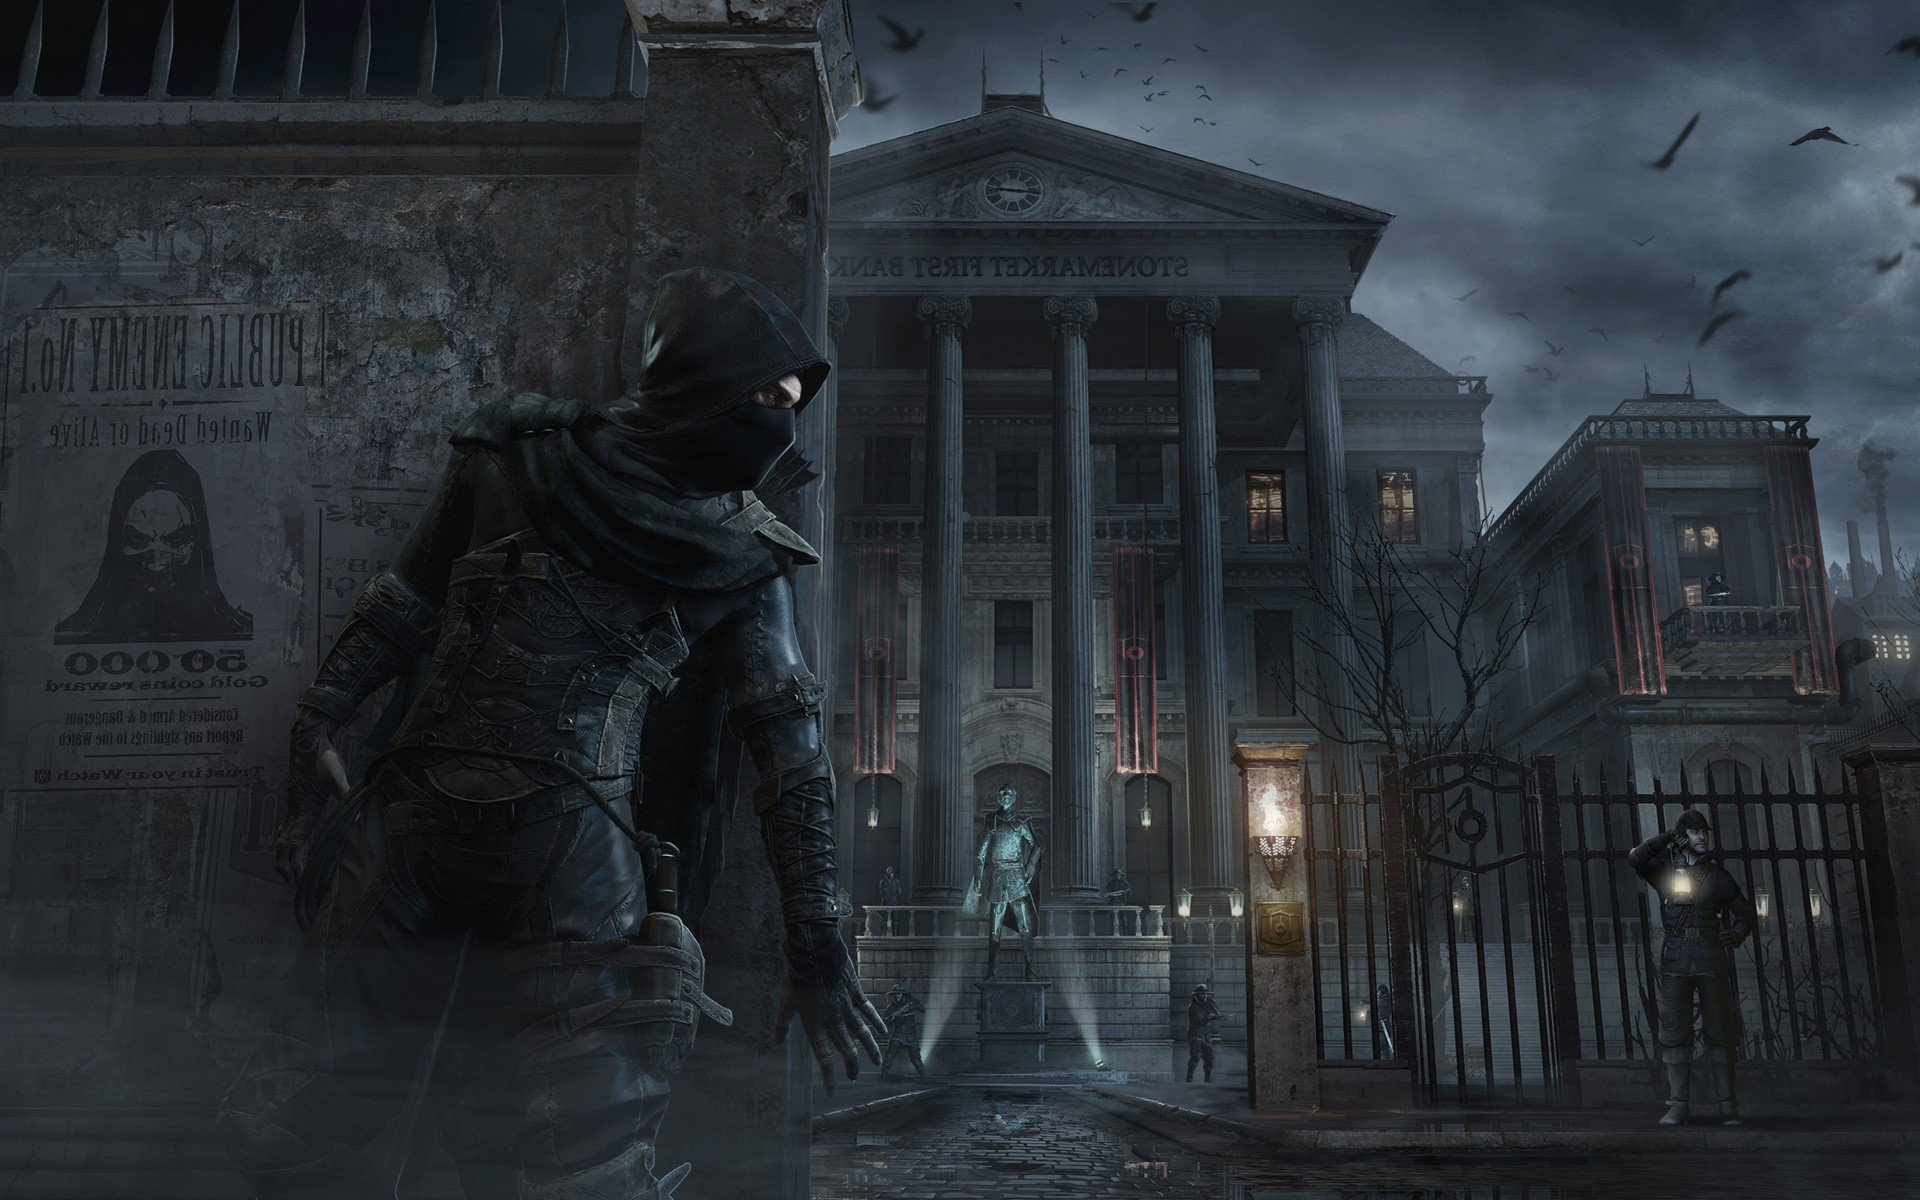 thief video game hd, hd games, 4k wallpapers, images, backgrounds